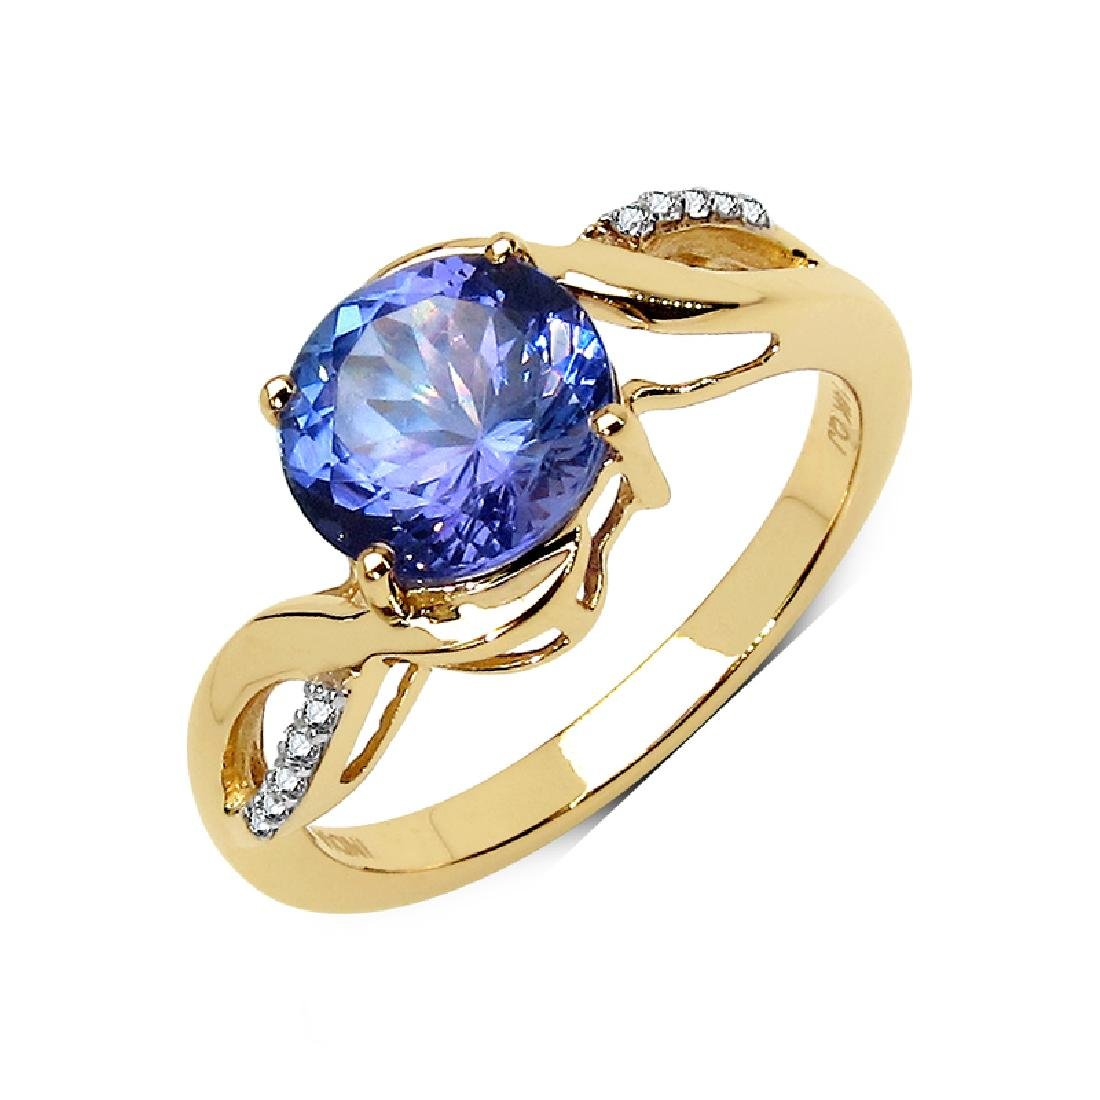 *Fine Jewelry 14 kt. Gold, 2.16CT Round Cut Tanzanite